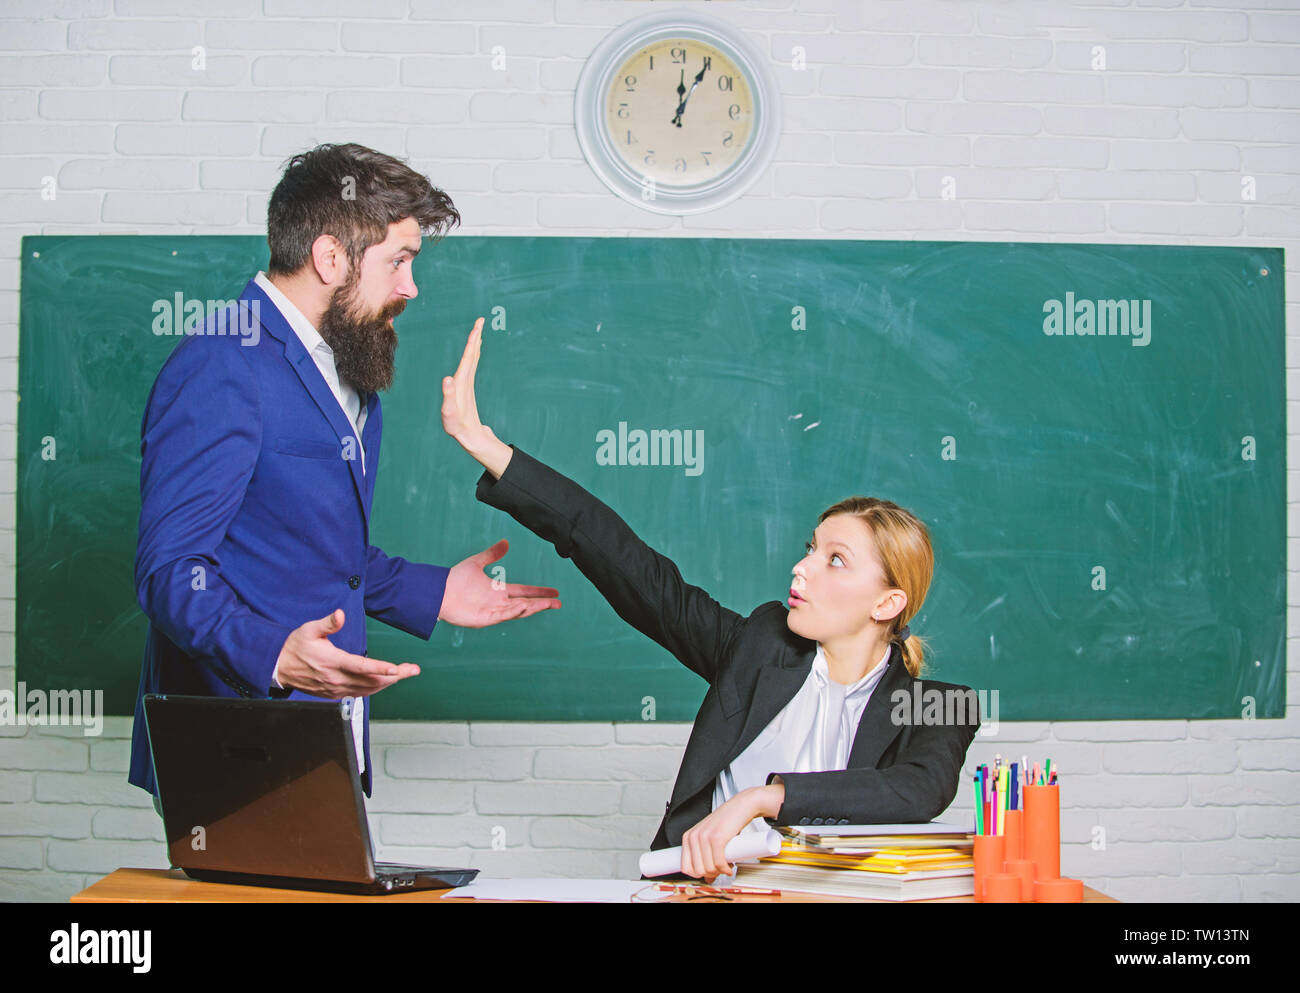 Criticism And Objection Concept Teacher Wants Man To Shut Up Please Shut Up Tired Of Complaints Indifferent About Objection Dismissed Objection School Teacher And Parent Stop Talking To Me Stock Photo